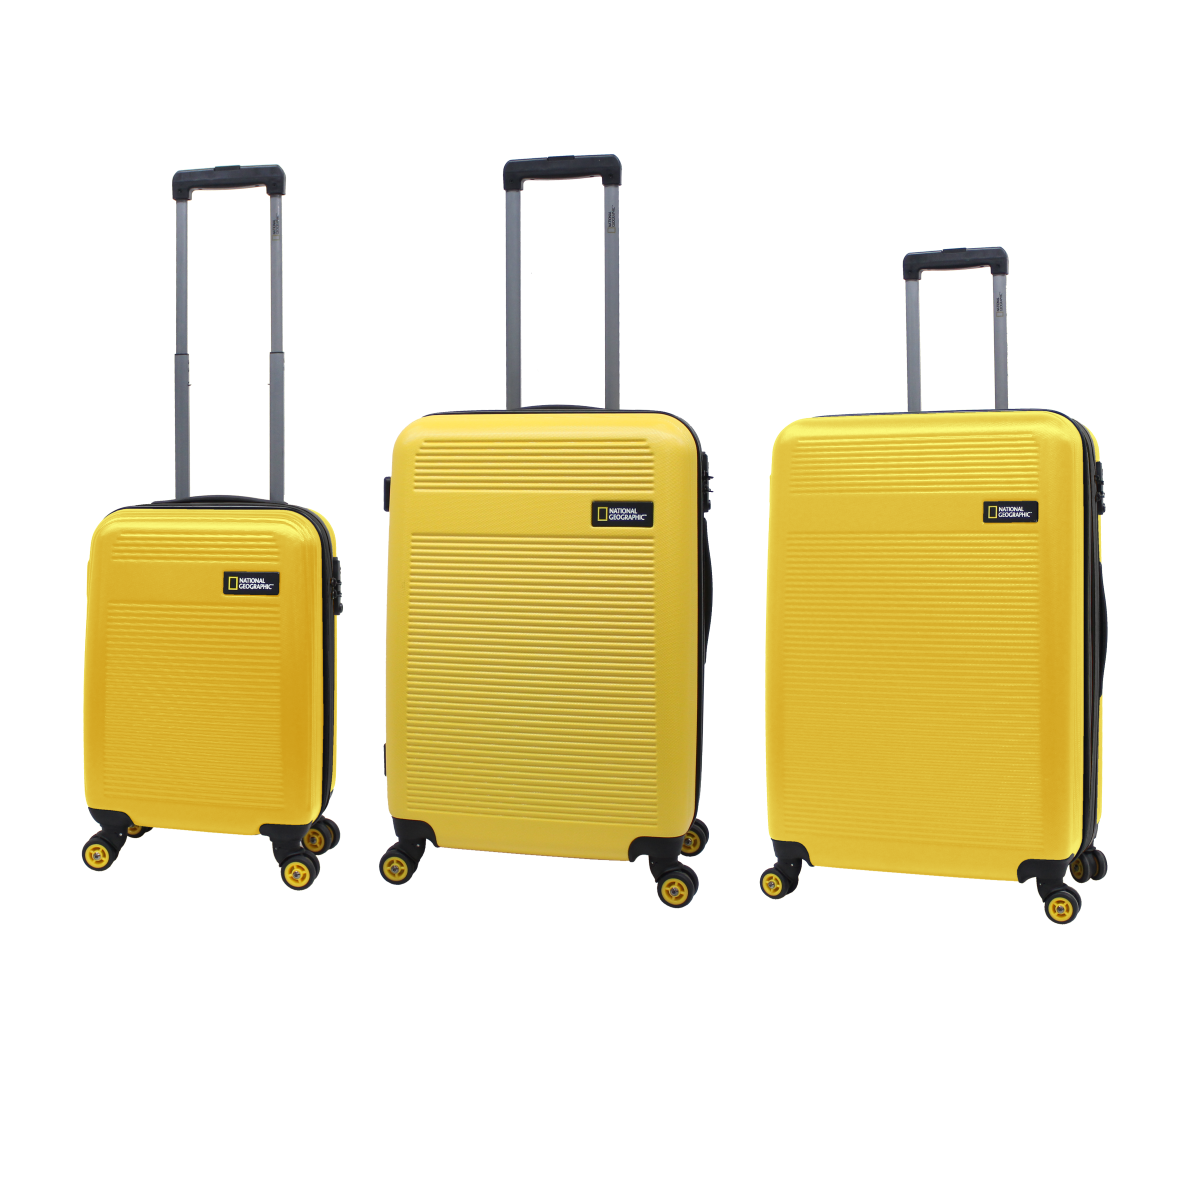 aerodome-expandable-luggage-yellow